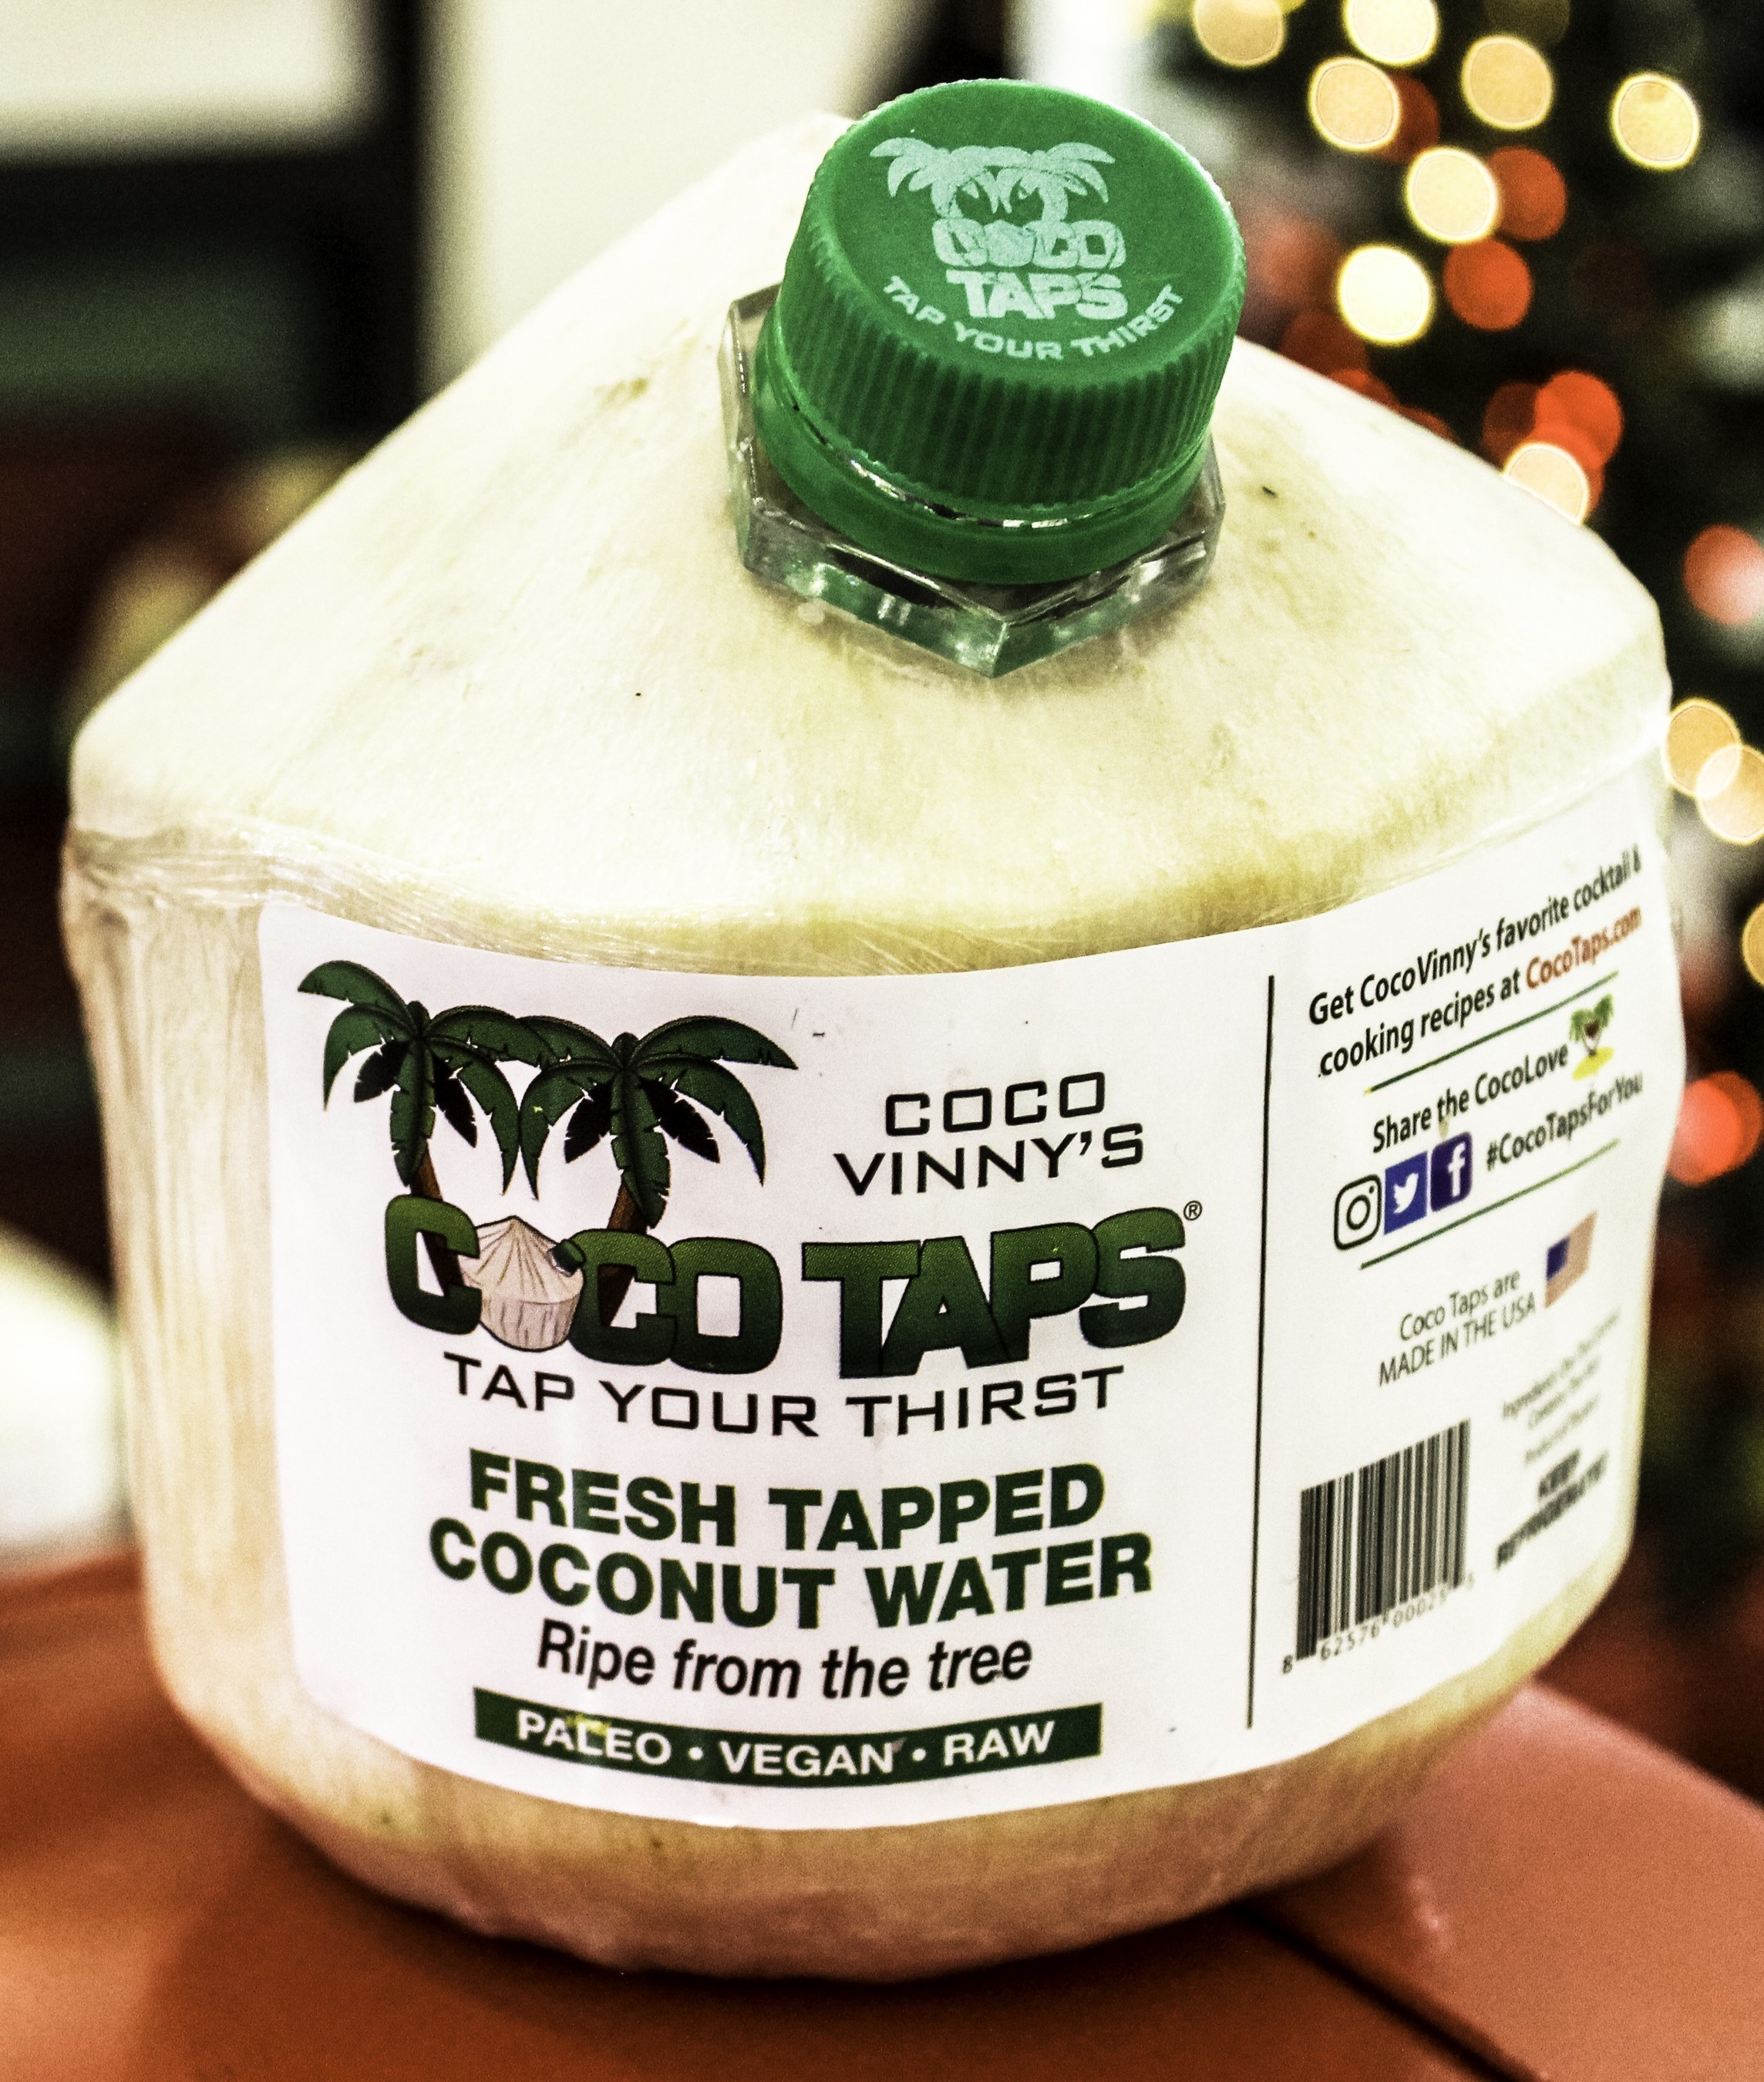 Coco Taps fresh-tapped coconuts are available in select Whole Food Market stores. Drinking fresh coconut water directly from the coconut delivers great taste and nutrients.